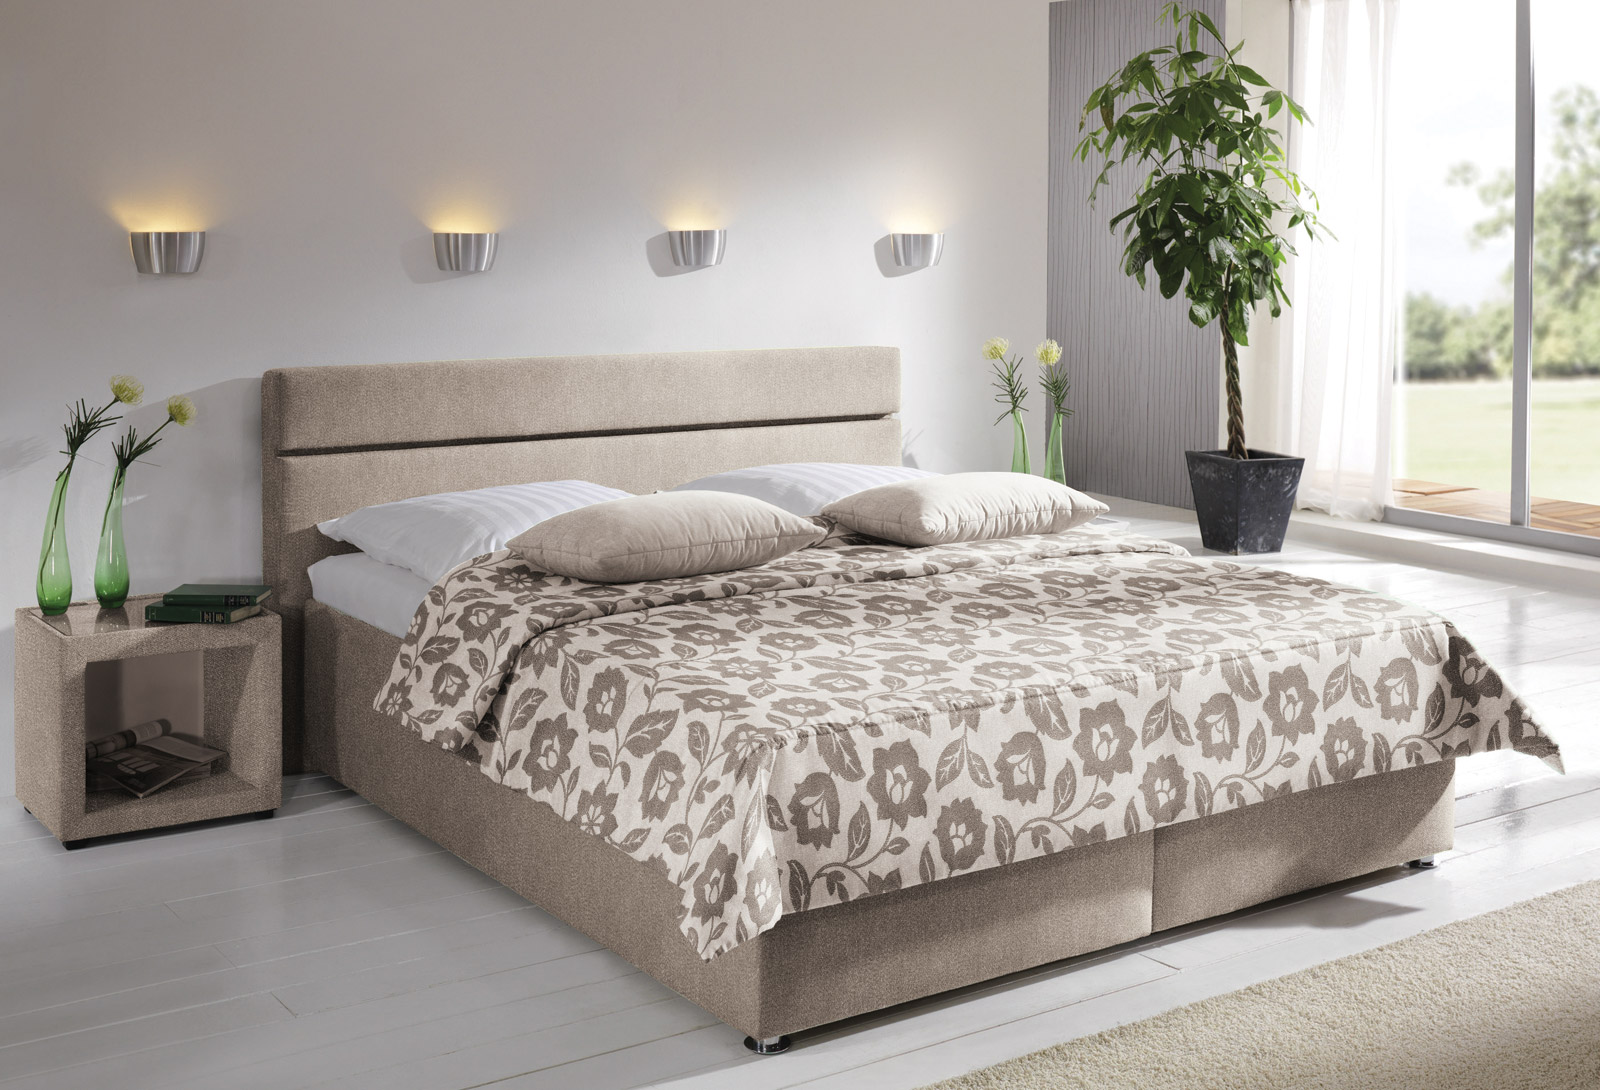 polsterbett severo hochwertig beige und in bergr en. Black Bedroom Furniture Sets. Home Design Ideas